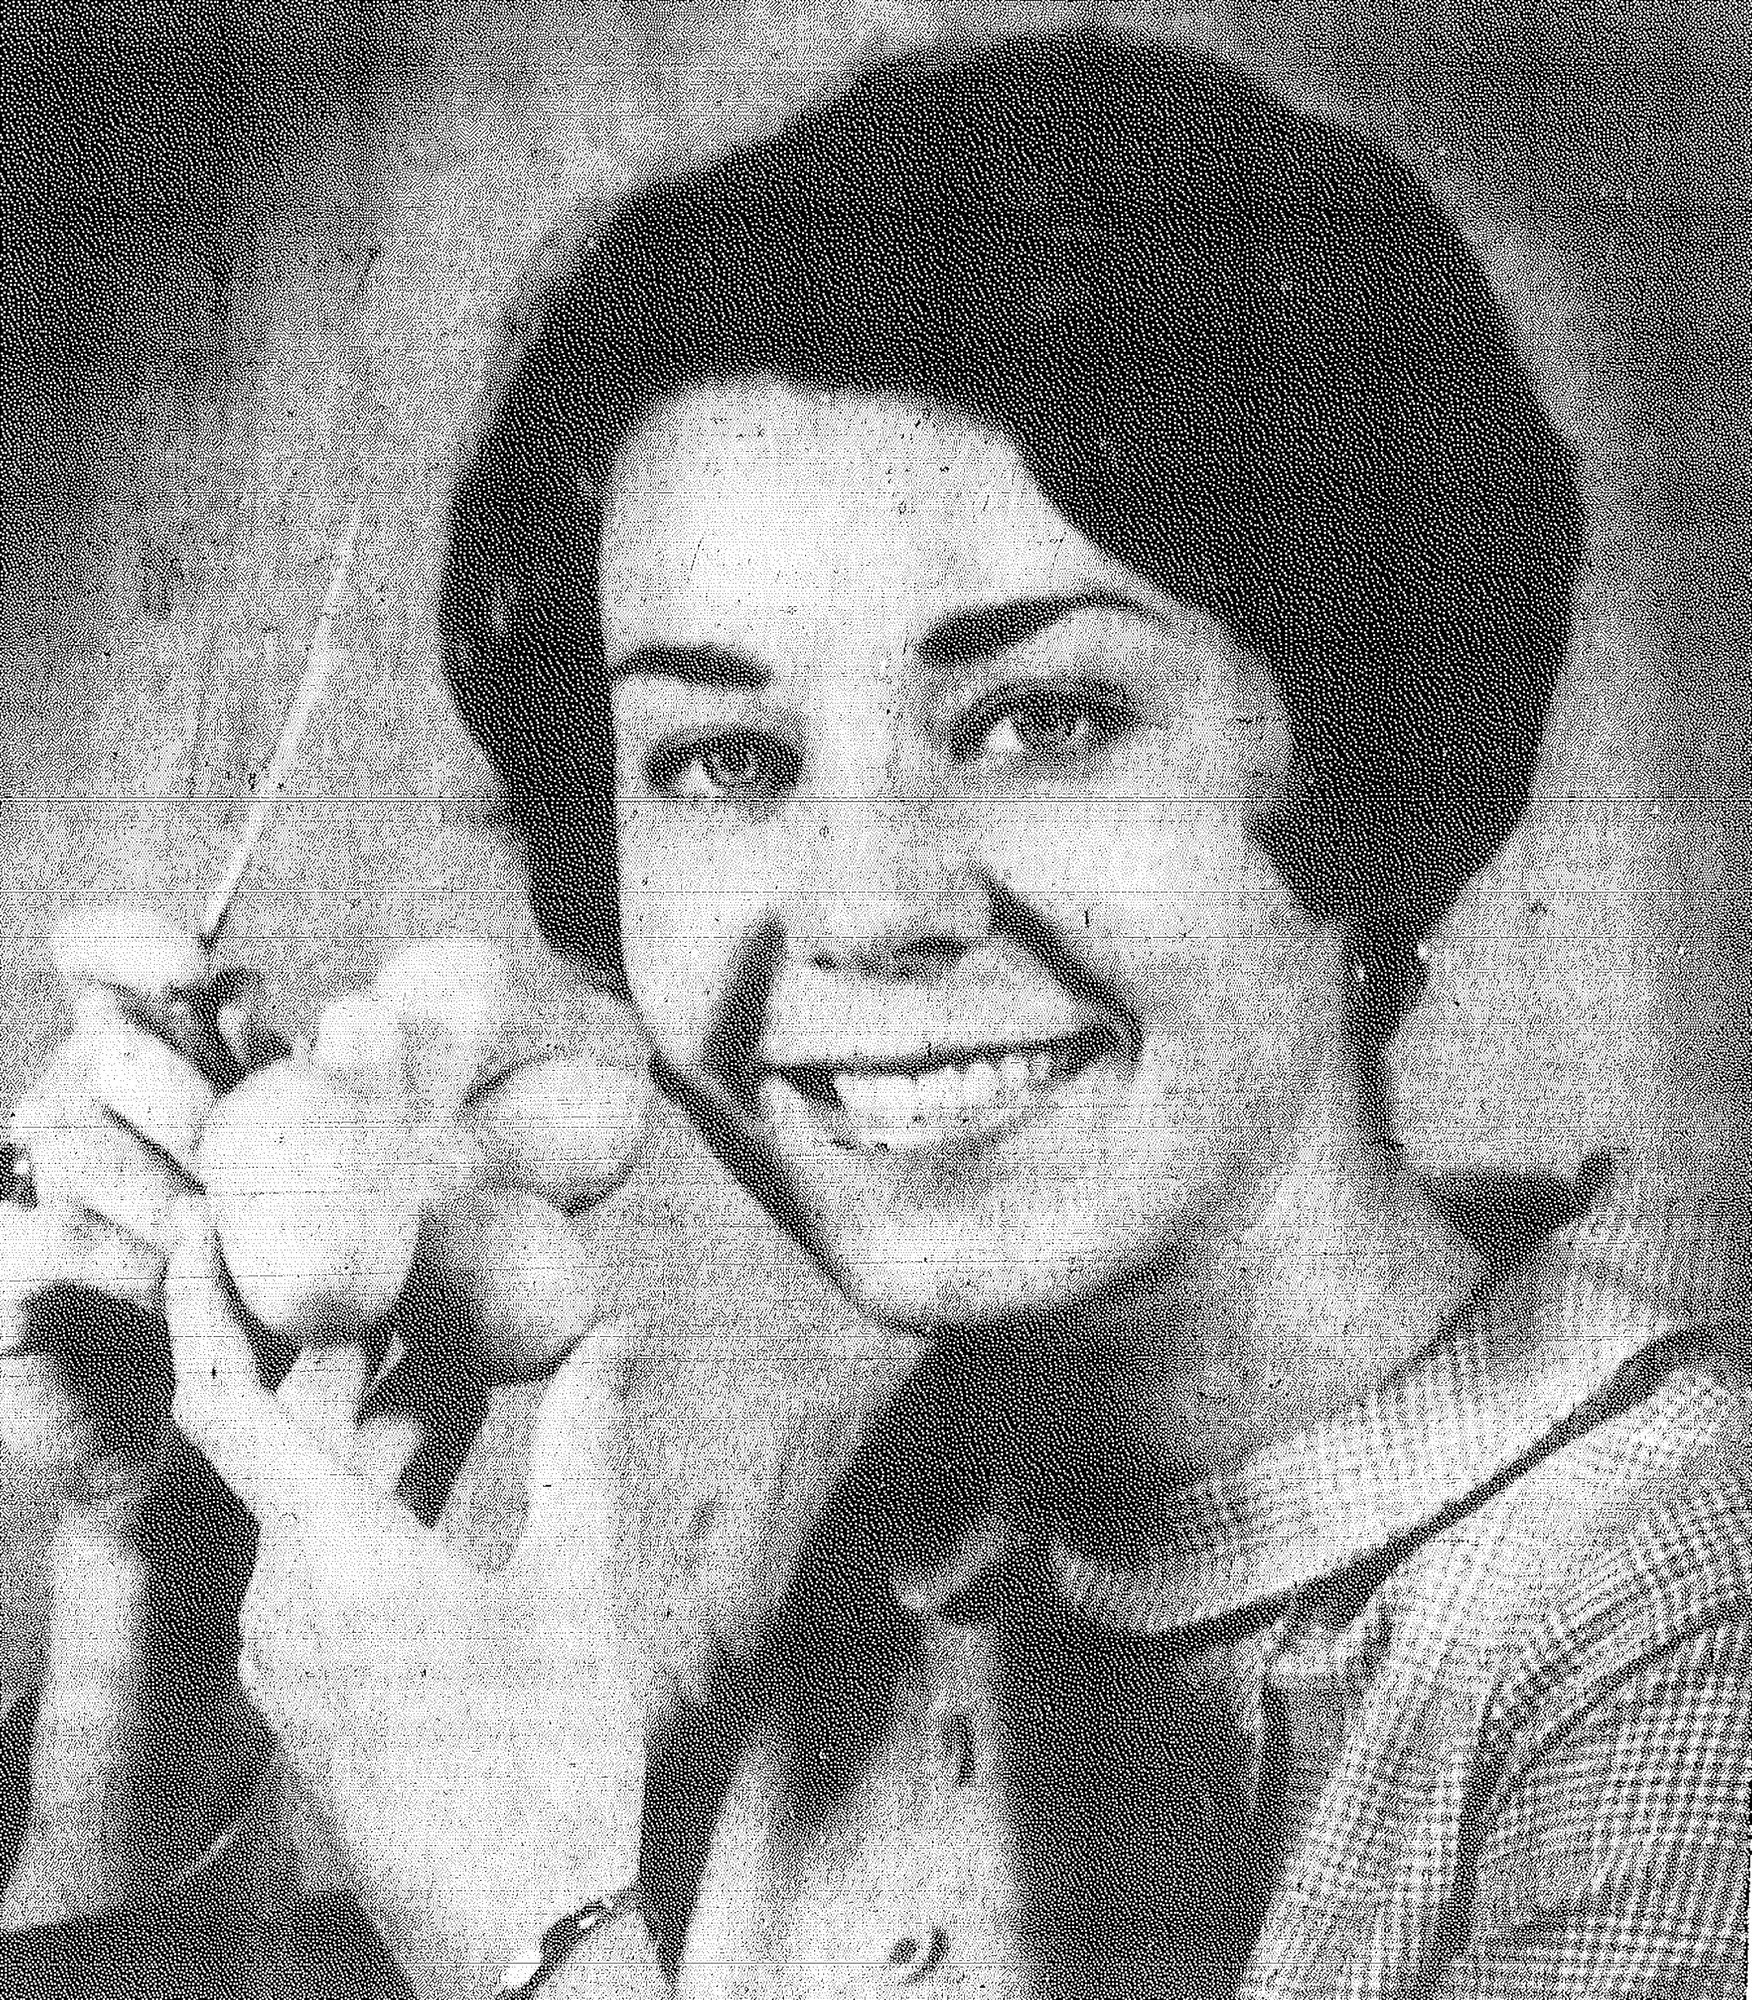 1969 - Mary Wayne Adams, Item summer employee, displays a bizarre tomato found growing behind the Item building. The tomato ripened and was given to her father, Item production superintendent J.C. Adams, who didn't know whether to eat it or patent it.